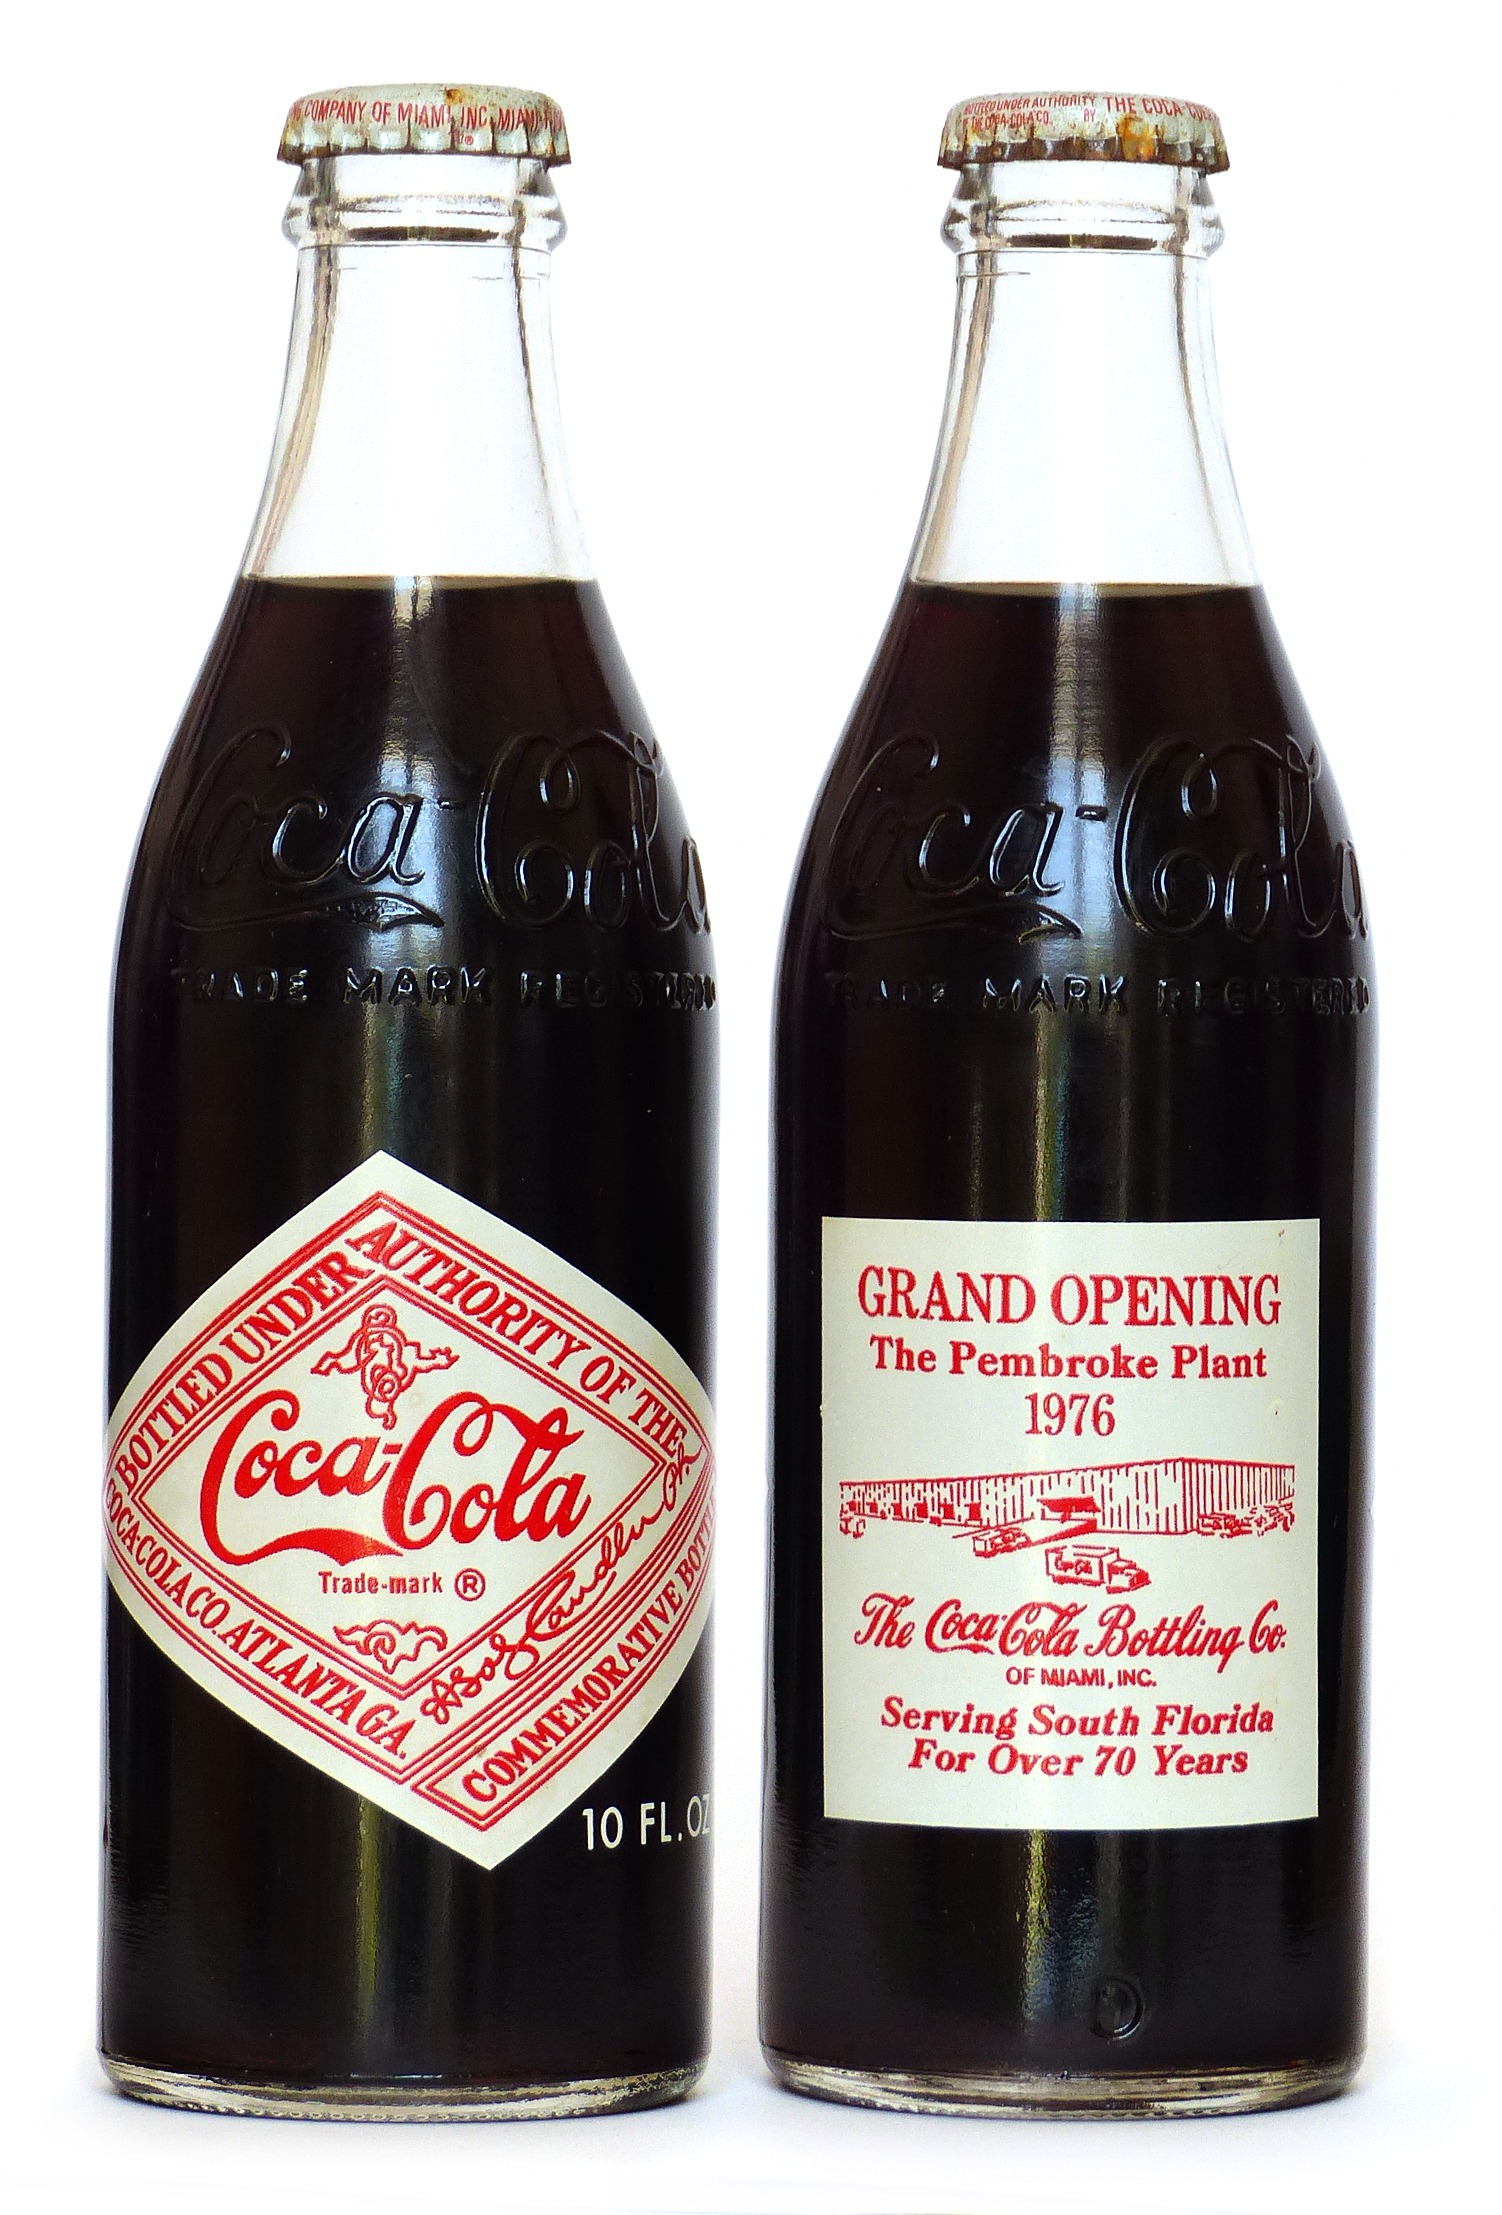 Coke Bottle from USA (US128)